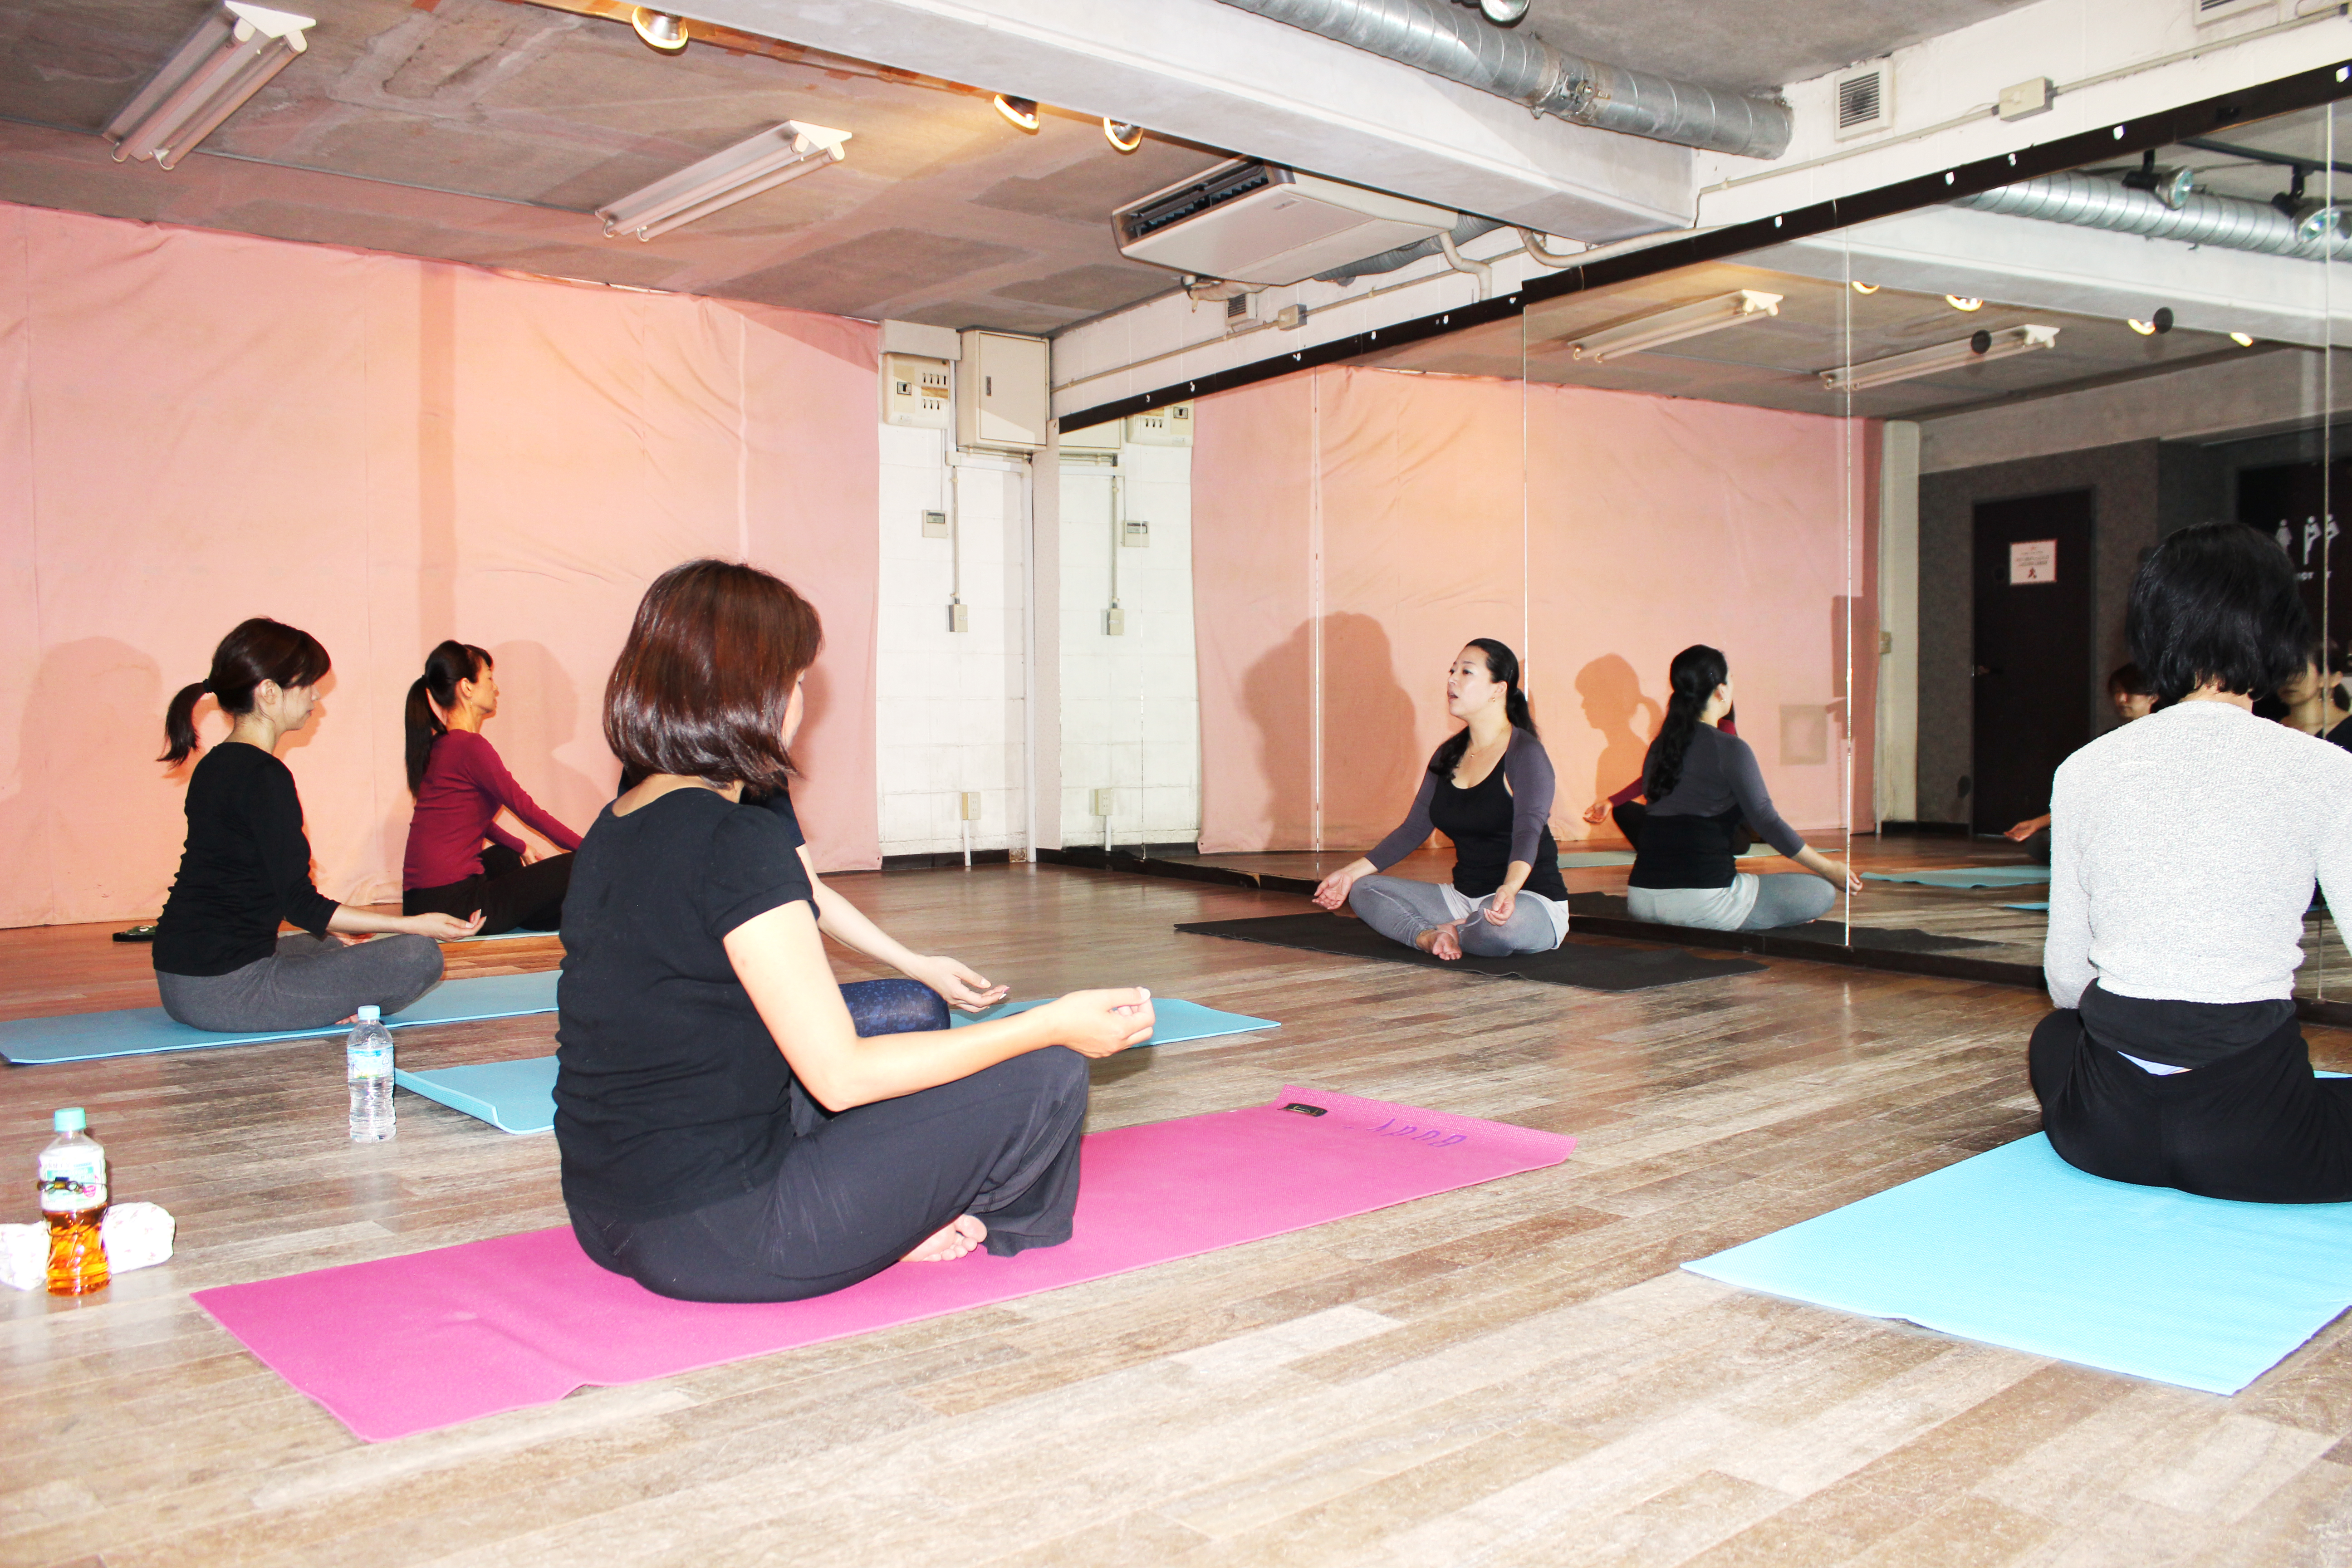 Yoga salon GRACIAGE